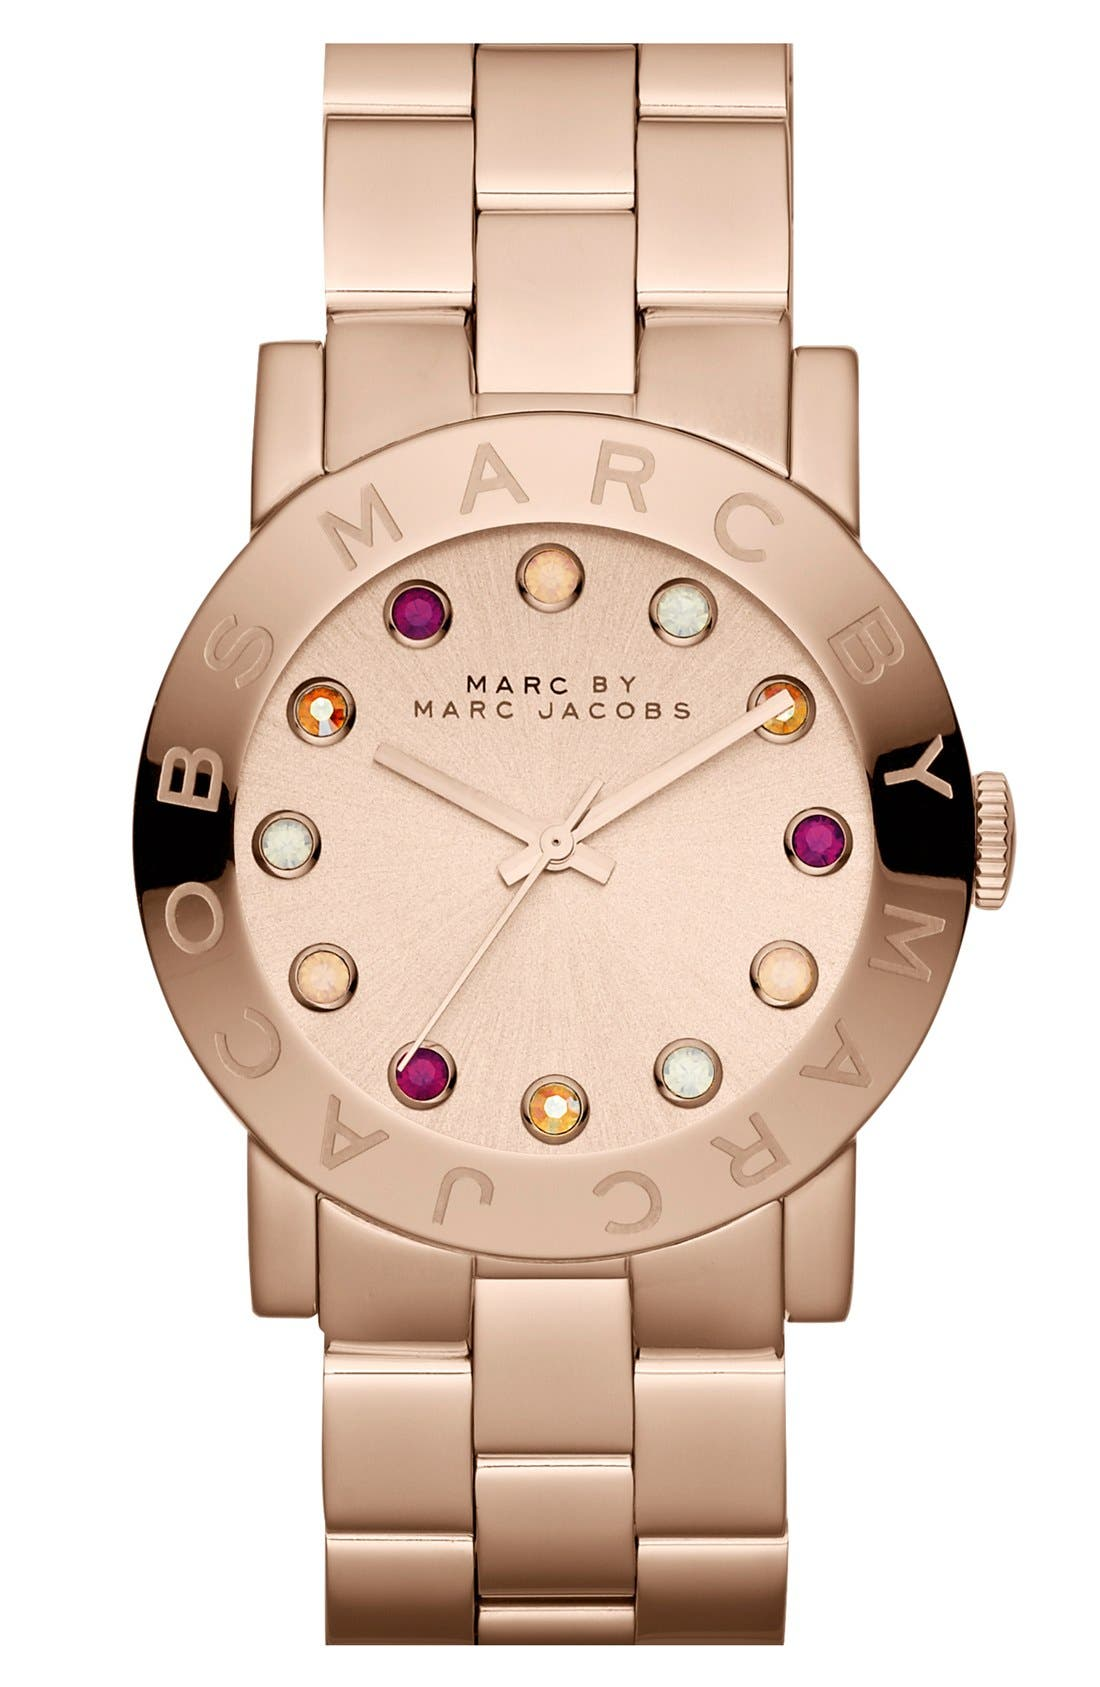 Alternate Image 1 Selected - MARC JACOBS 'Amy' Bracelet Watch, 37mm